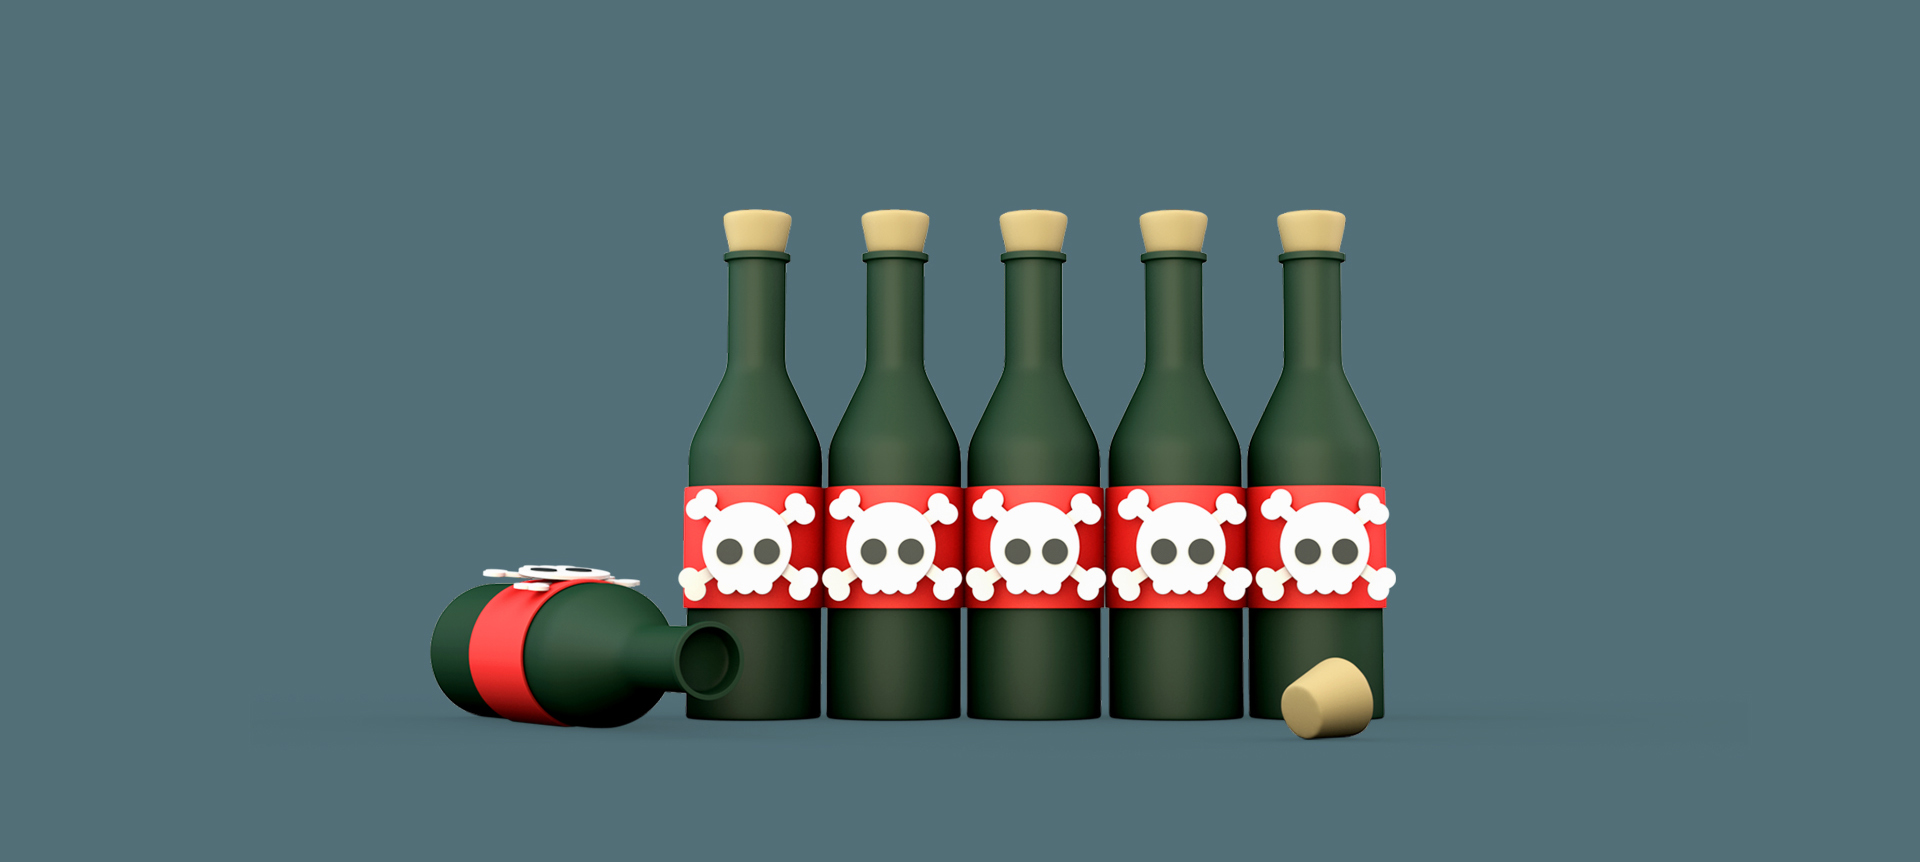 BOTTLES_devil_wheels_game_mrmotion_melo_domestika_tutorial_unity5